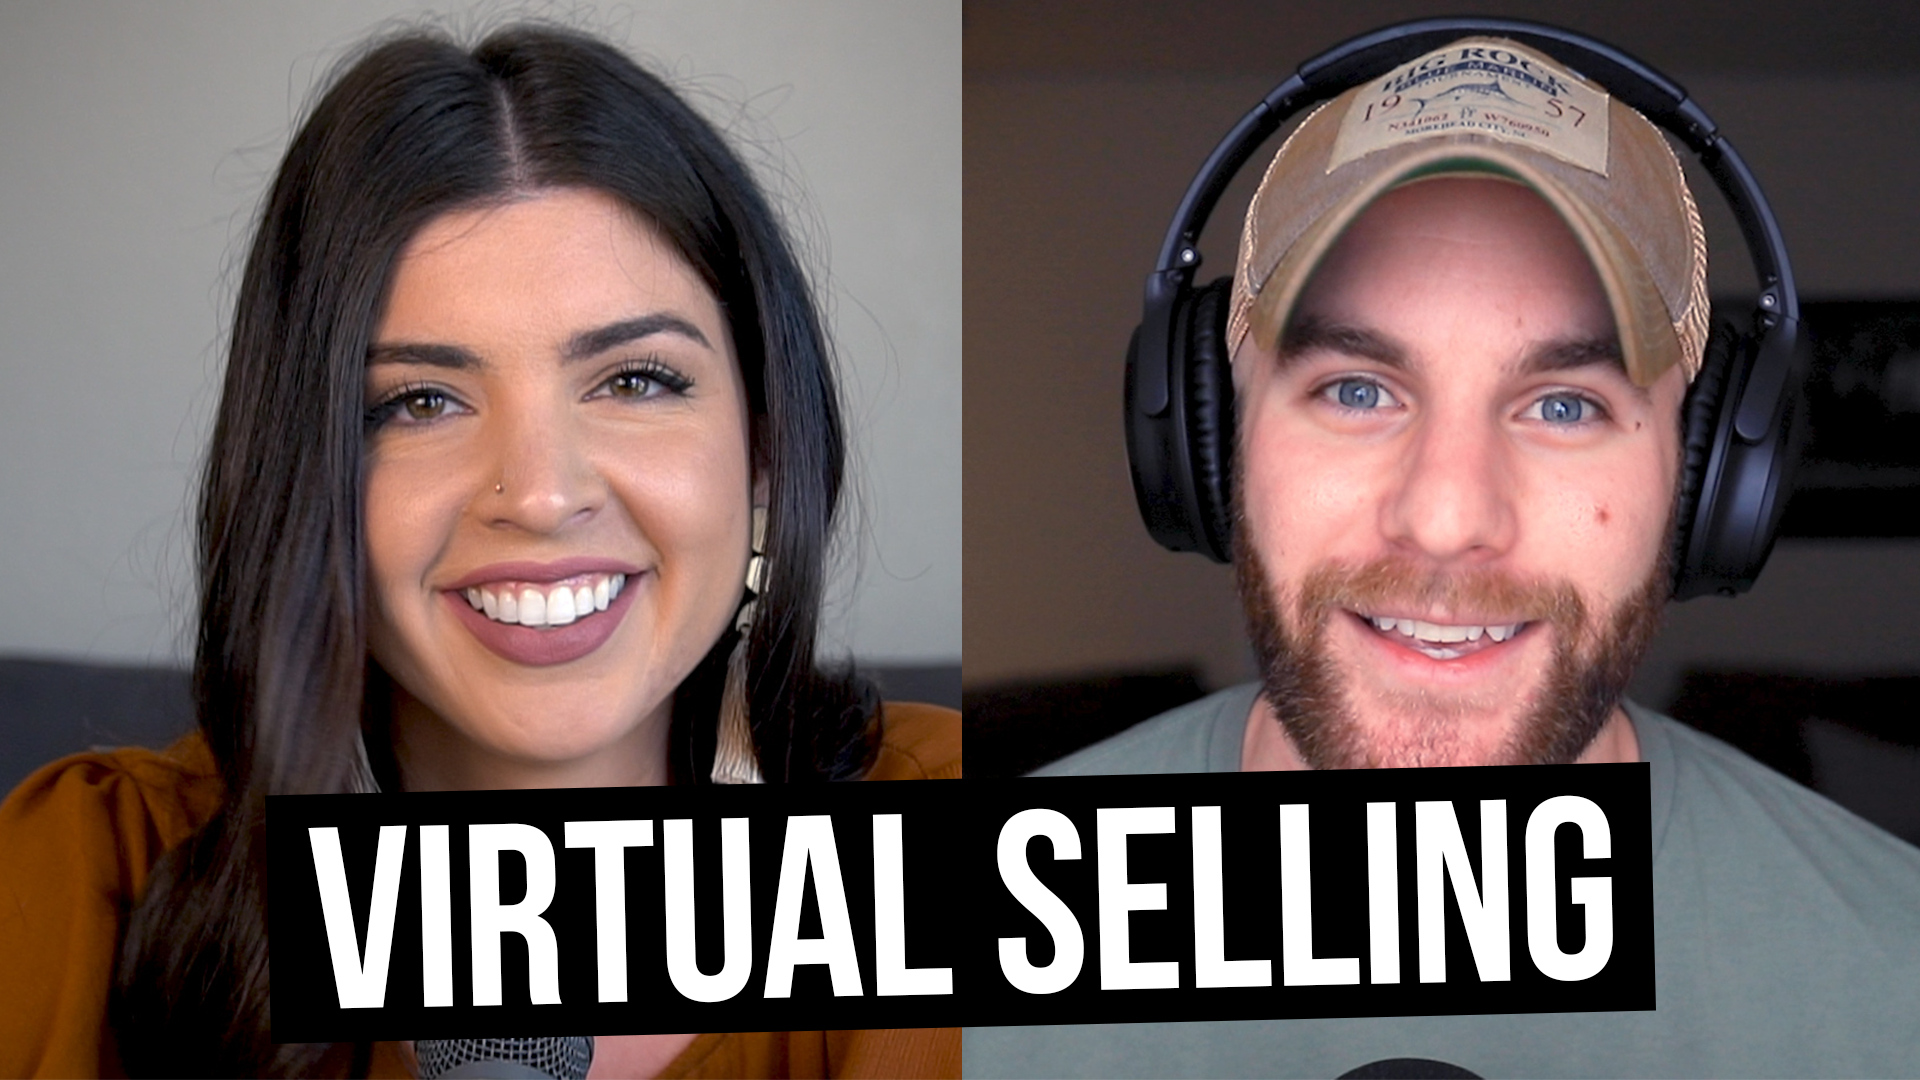 How to seamlessly adapt to virtual selling as a face-to-face sales team [Film School for Marketers, Ep. 39]